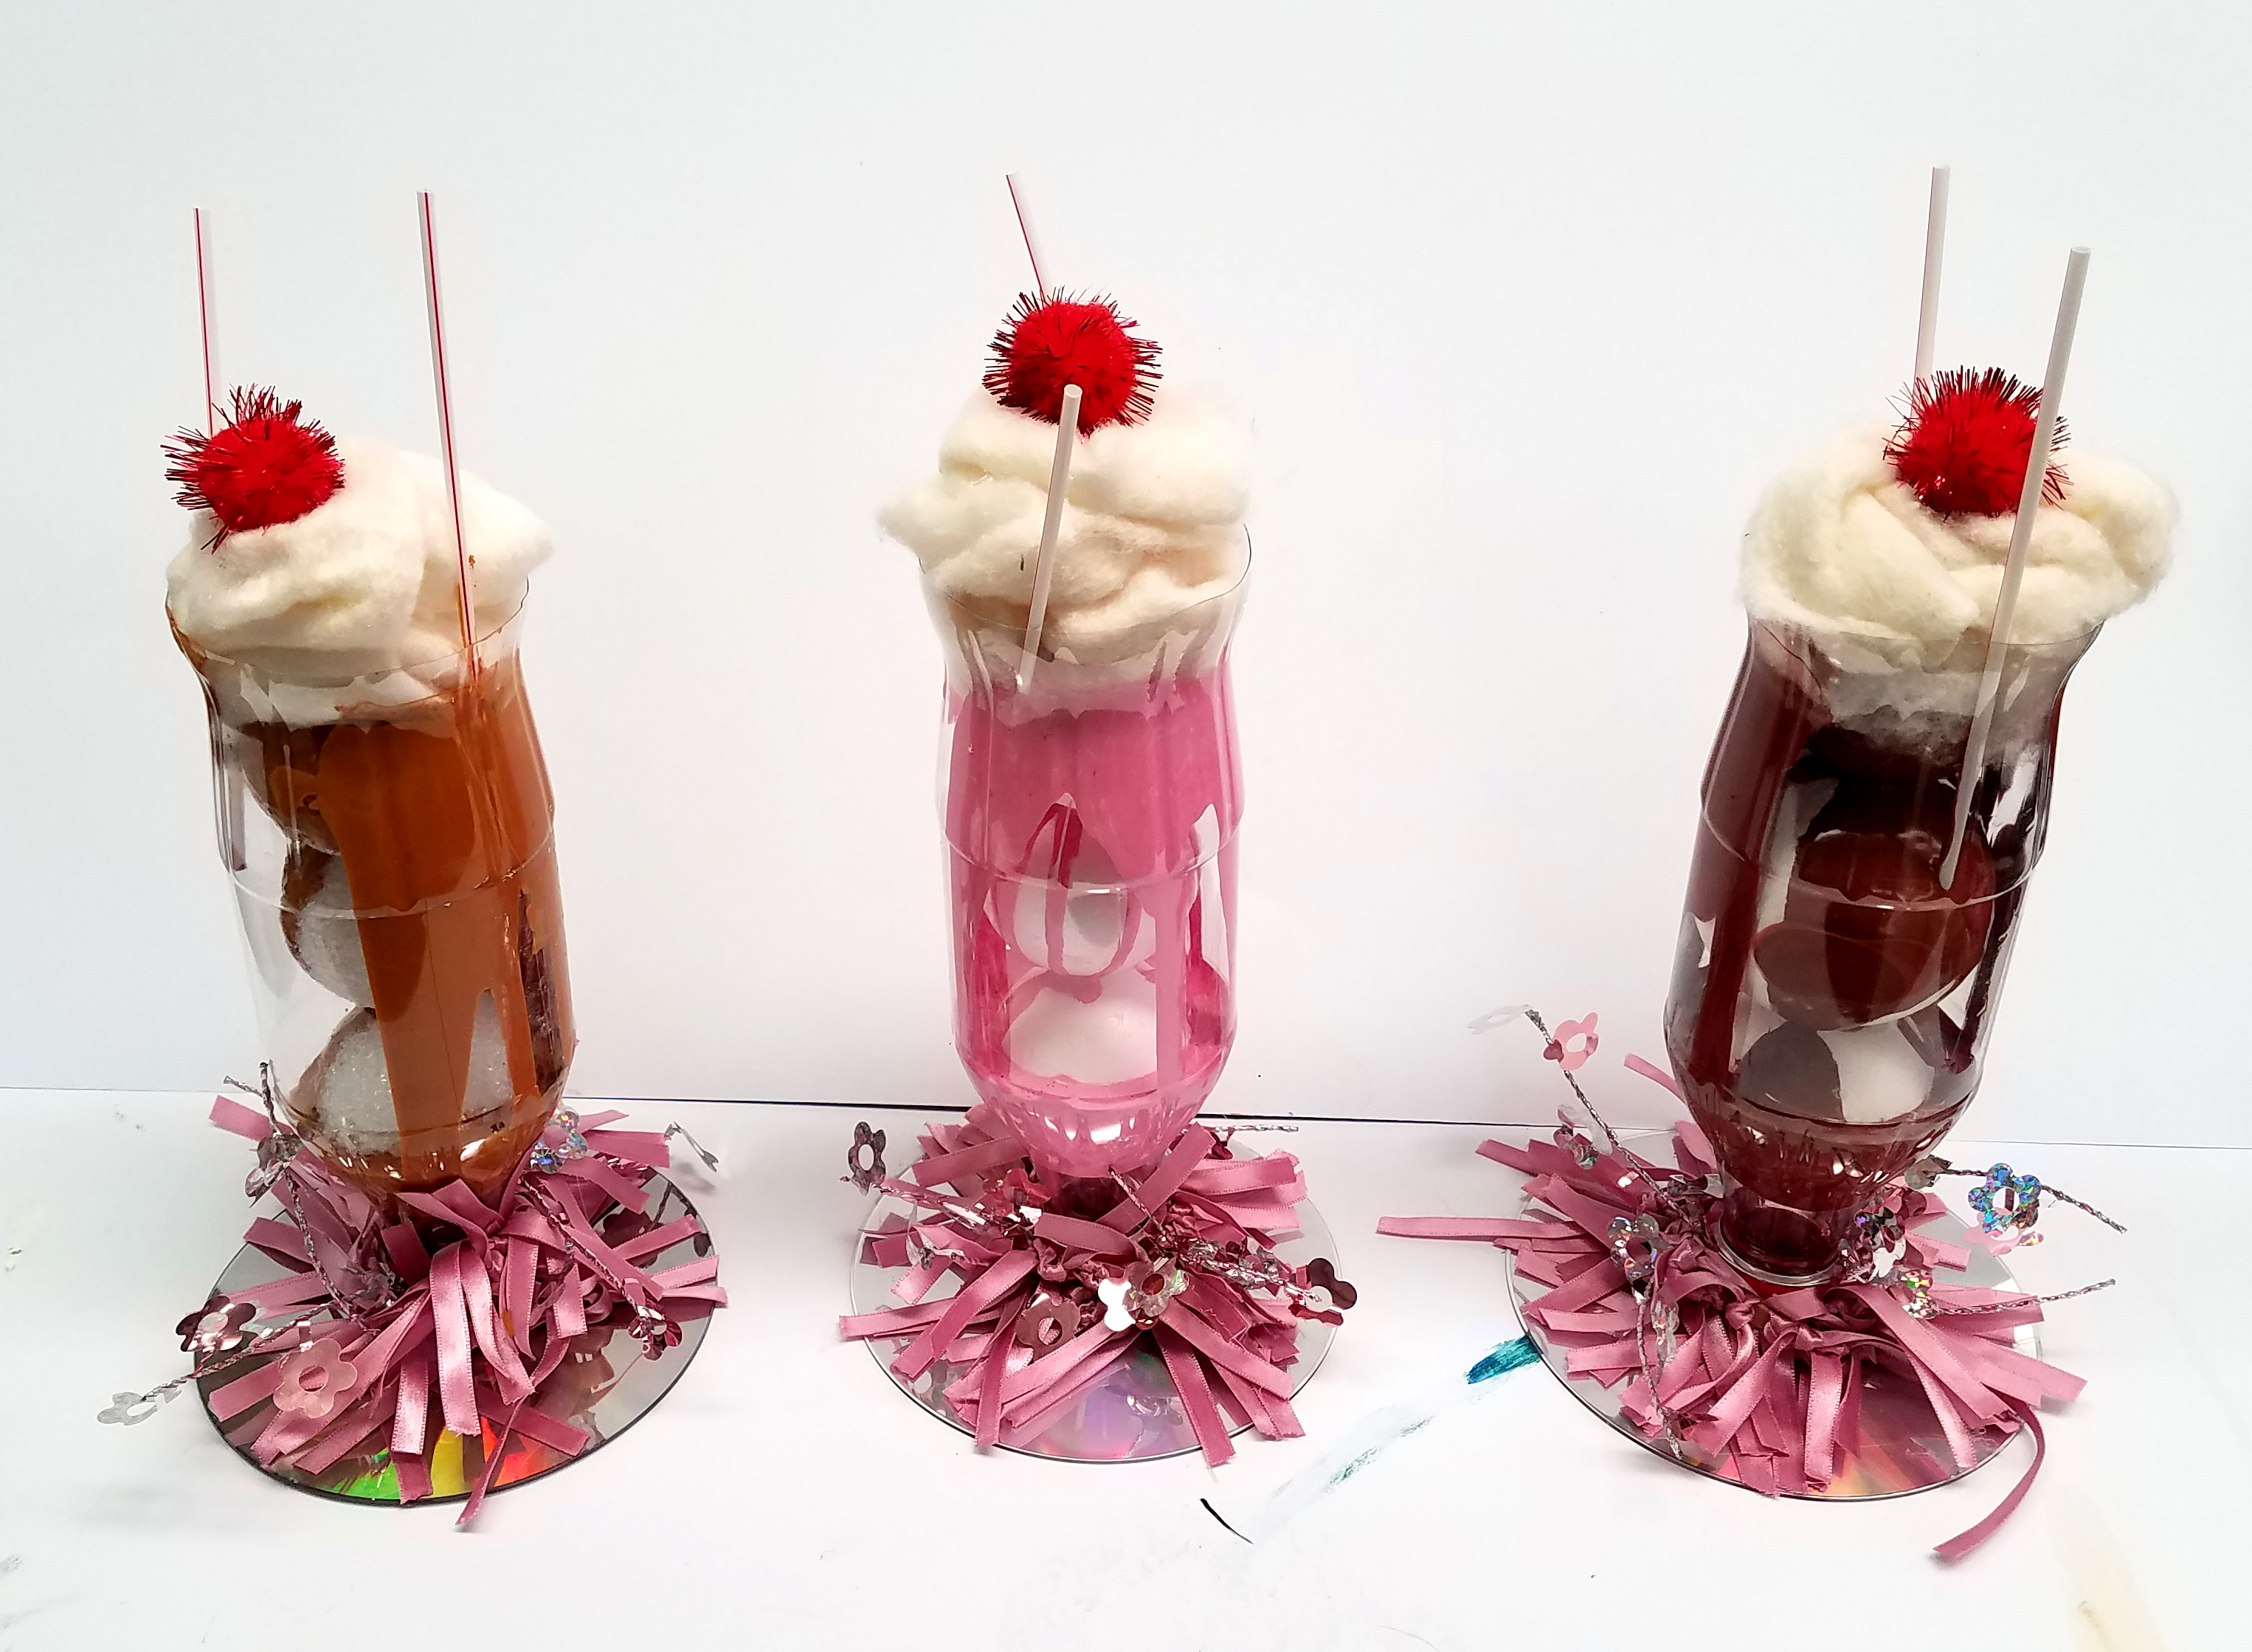 Three-dimensional art pieces made to look like ice cream sundaes, but created from non-edible materials like strips of paper and foam.